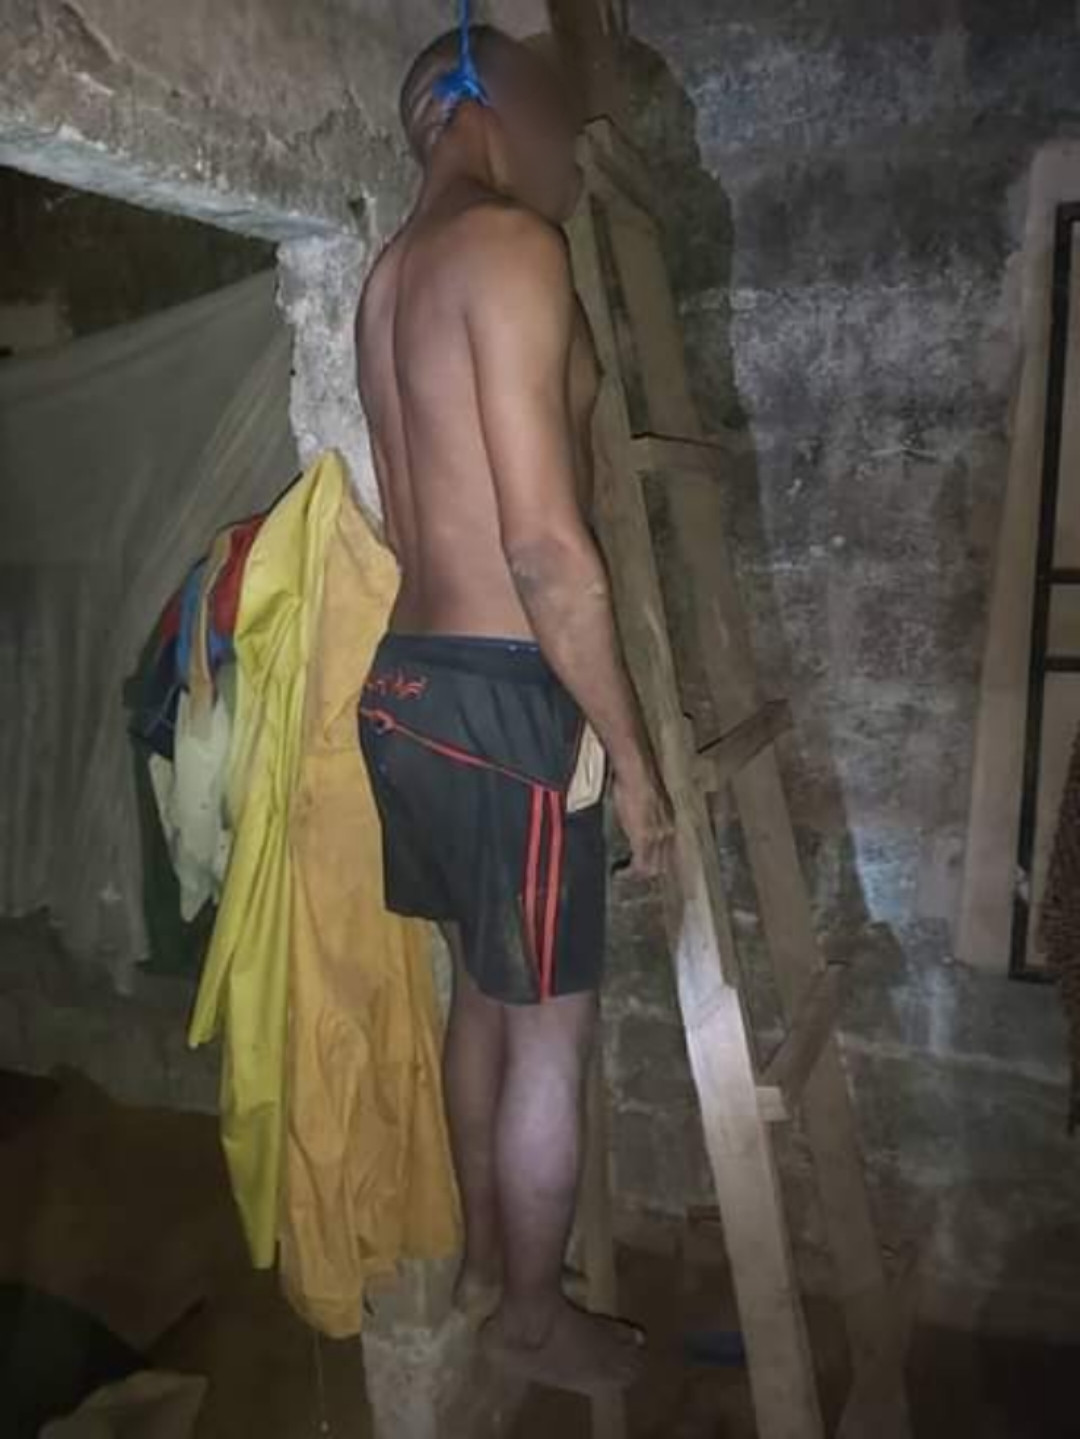 45-year-old man commits suicide in Imo (graphic photos)